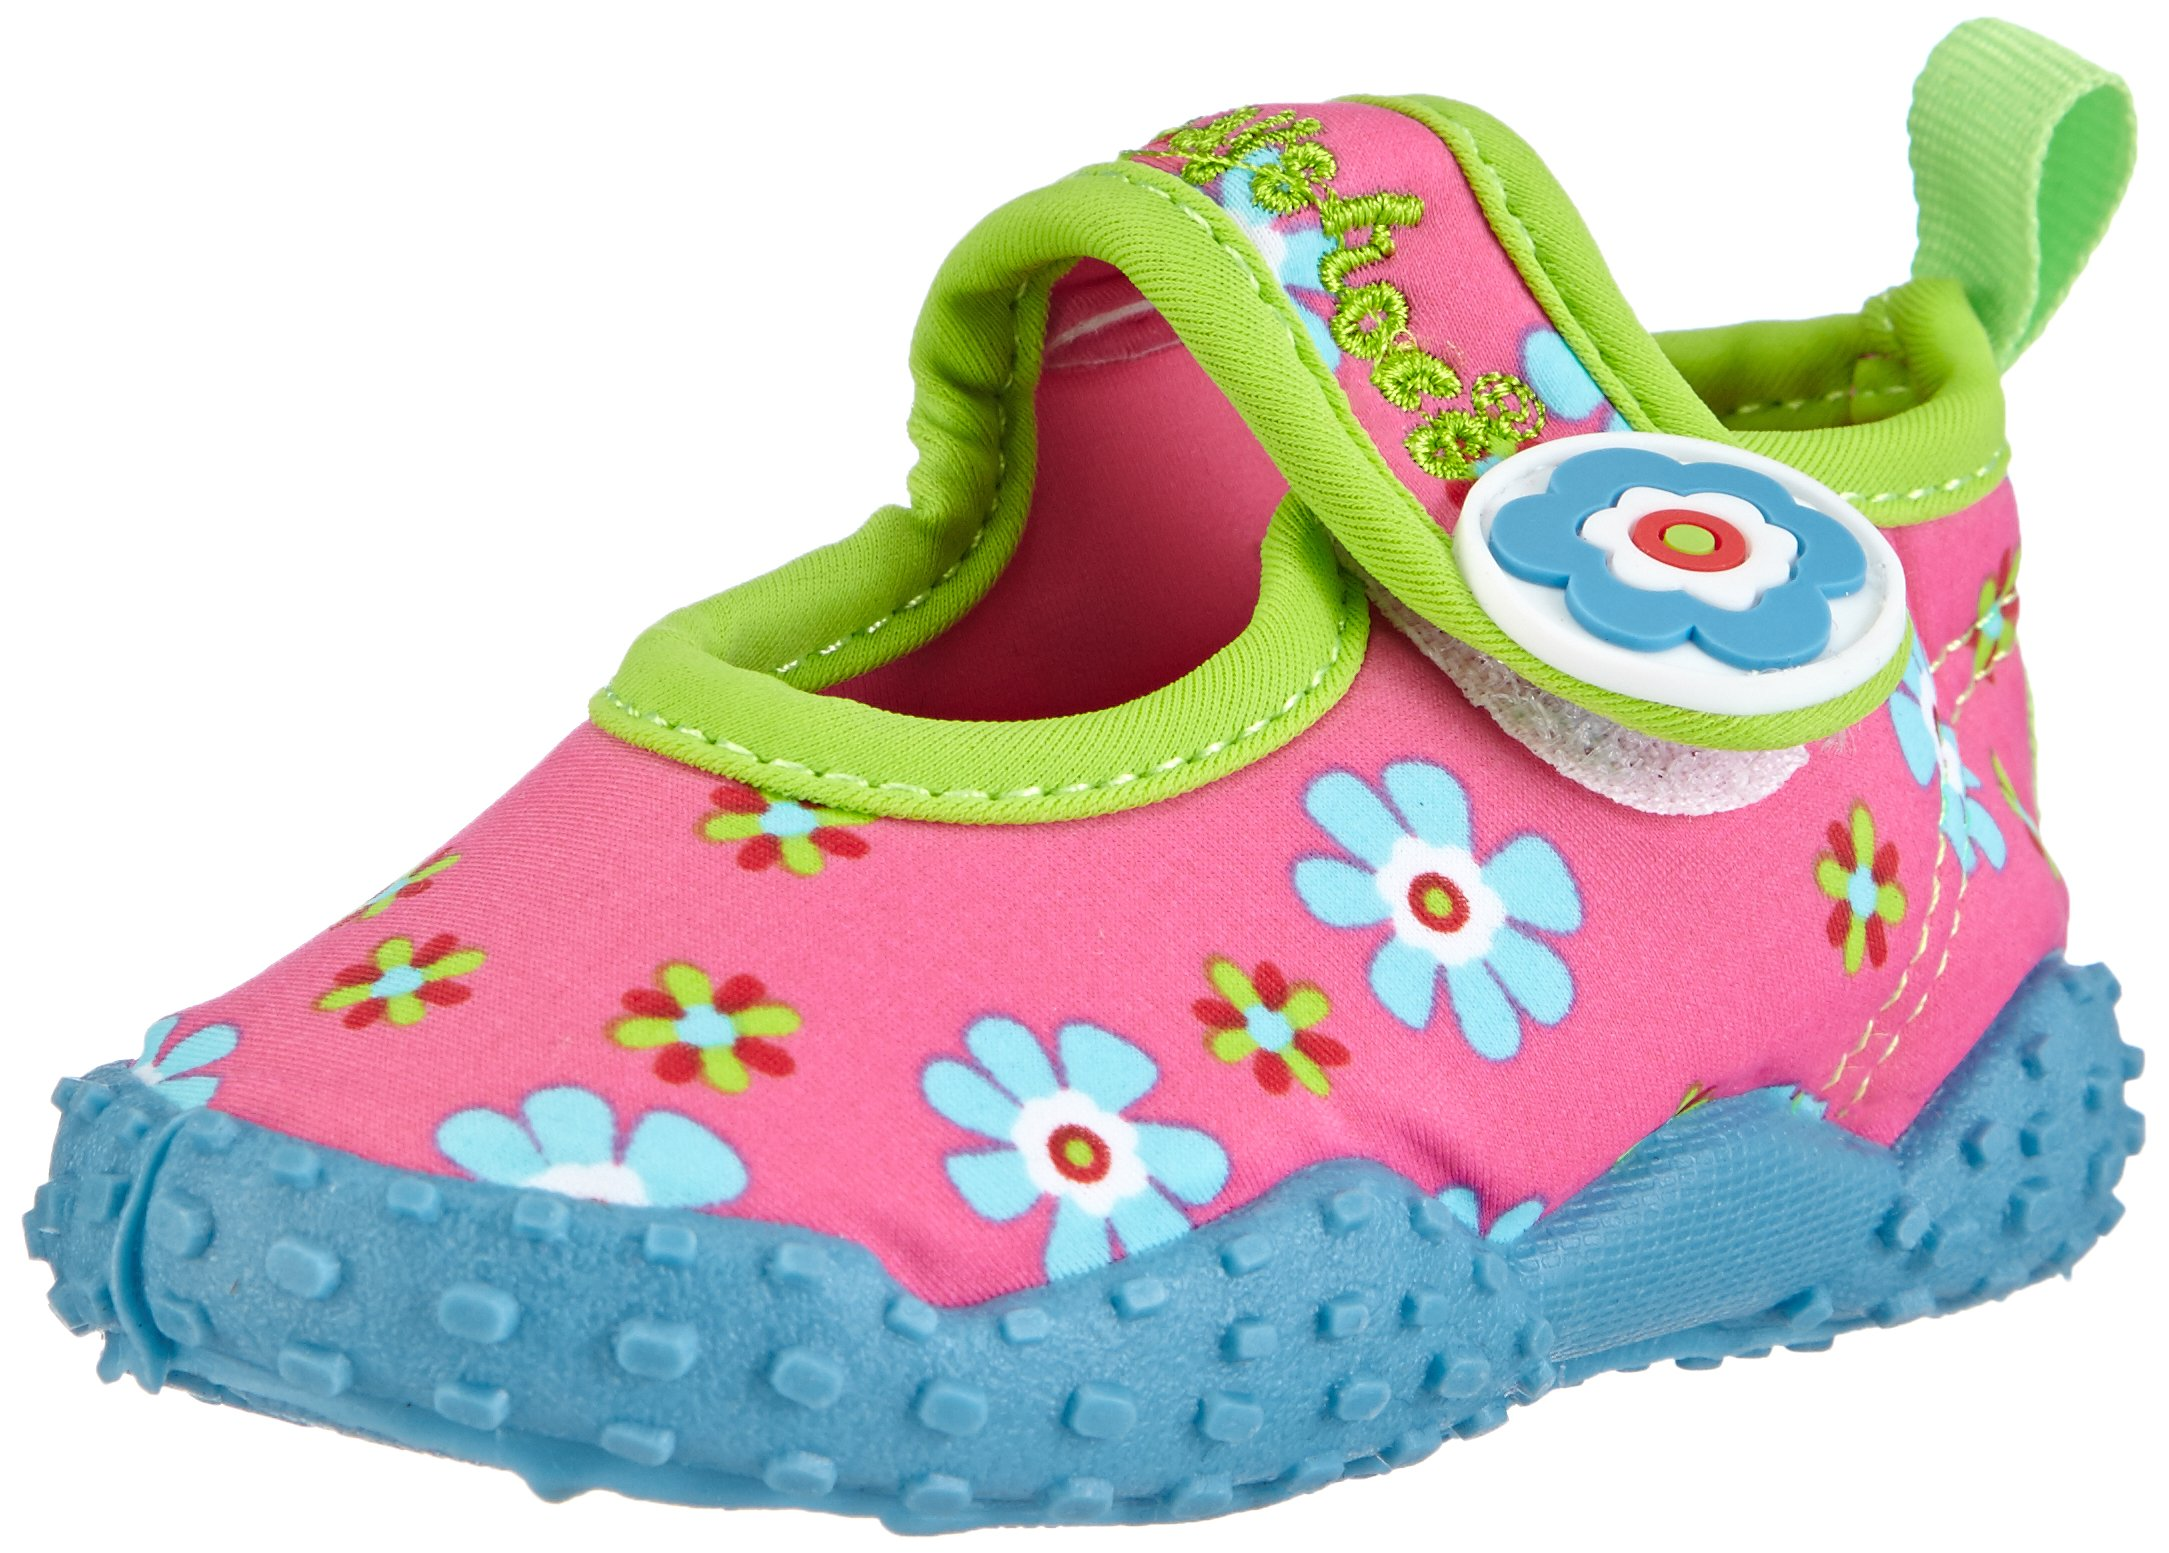 Playshoes Girl's UV Protection Flower Collection Aqua Swimming/Beach Shoes (4.5 M US Toddler) by Playshoes (Image #1)